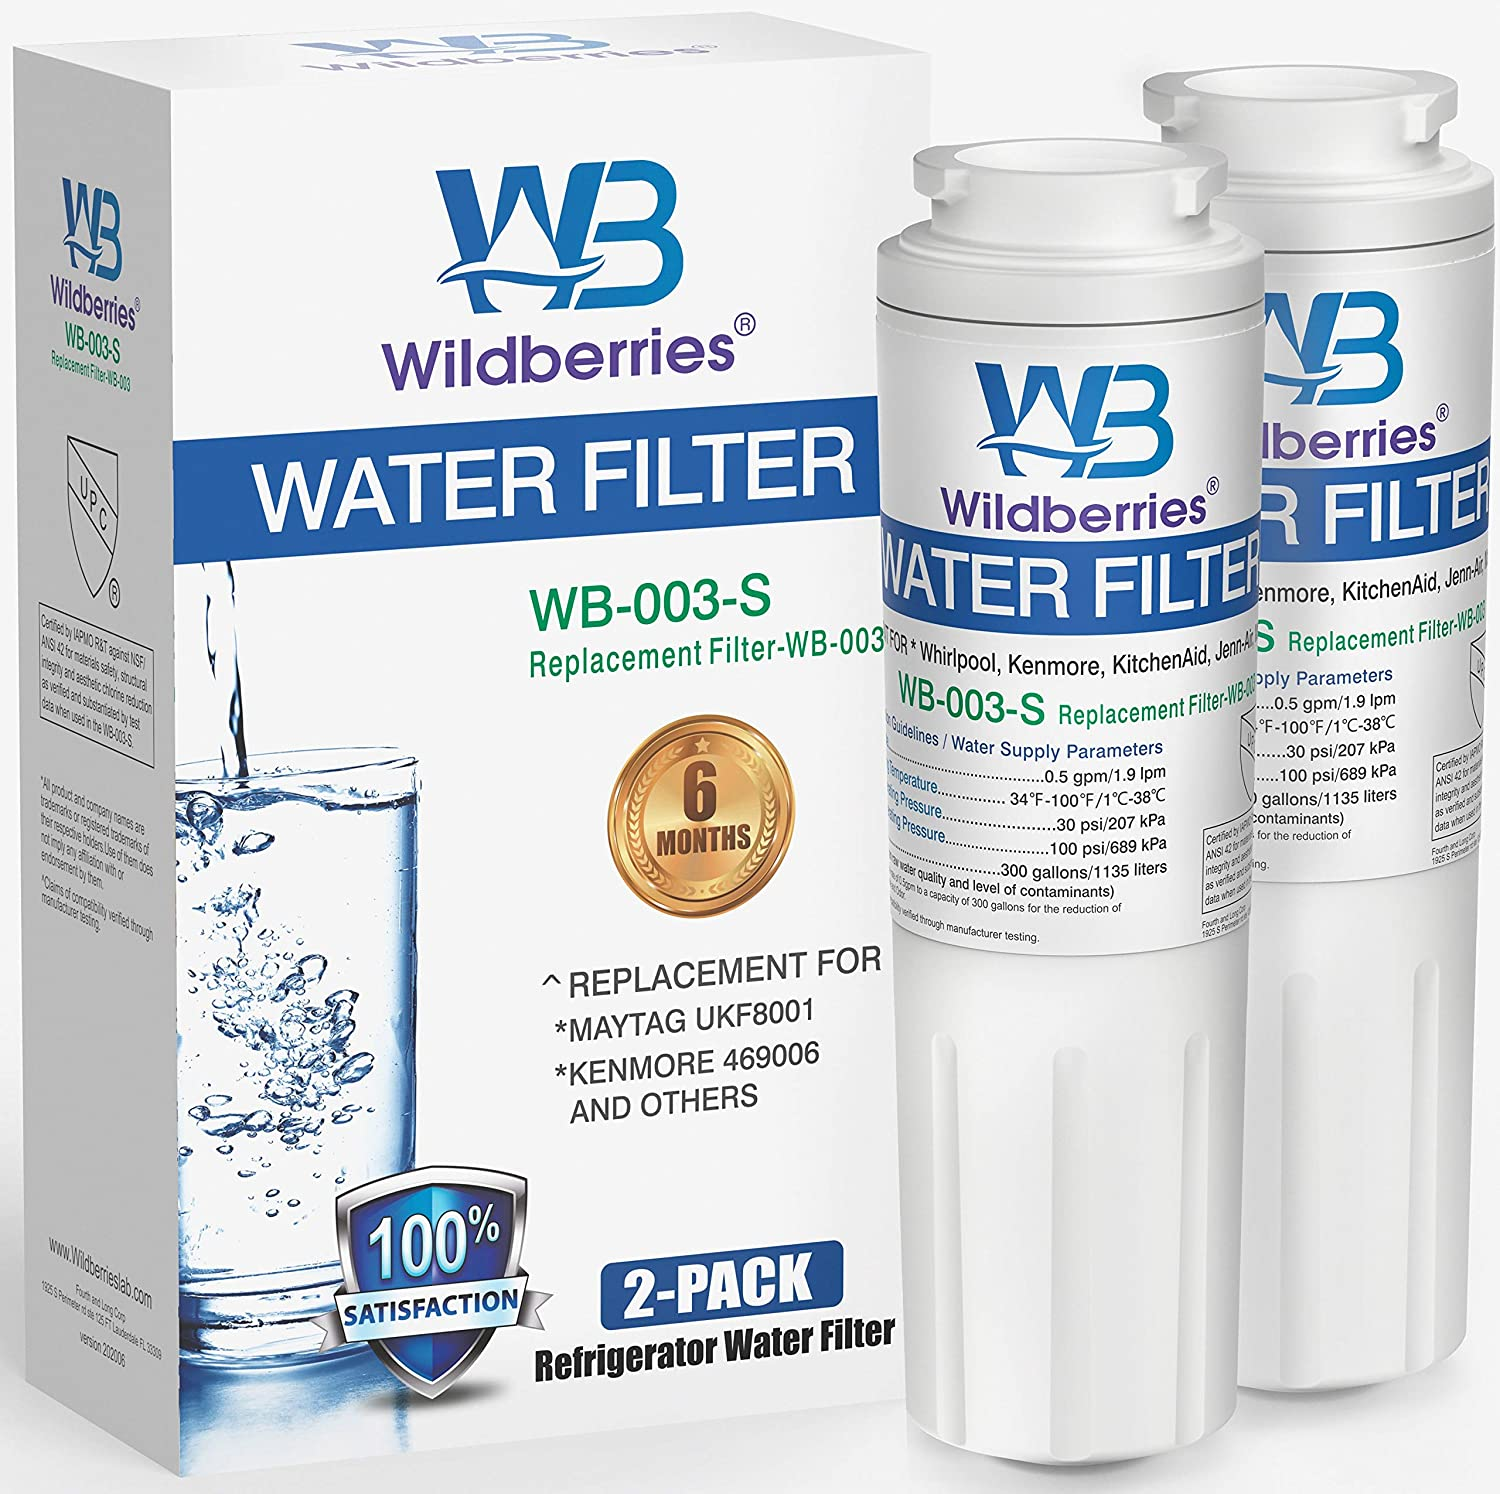 Outlet ☆ Free Shipping Wildberries 67003523 Water Filter Replacement Whirlpool for Refr Max 82% OFF